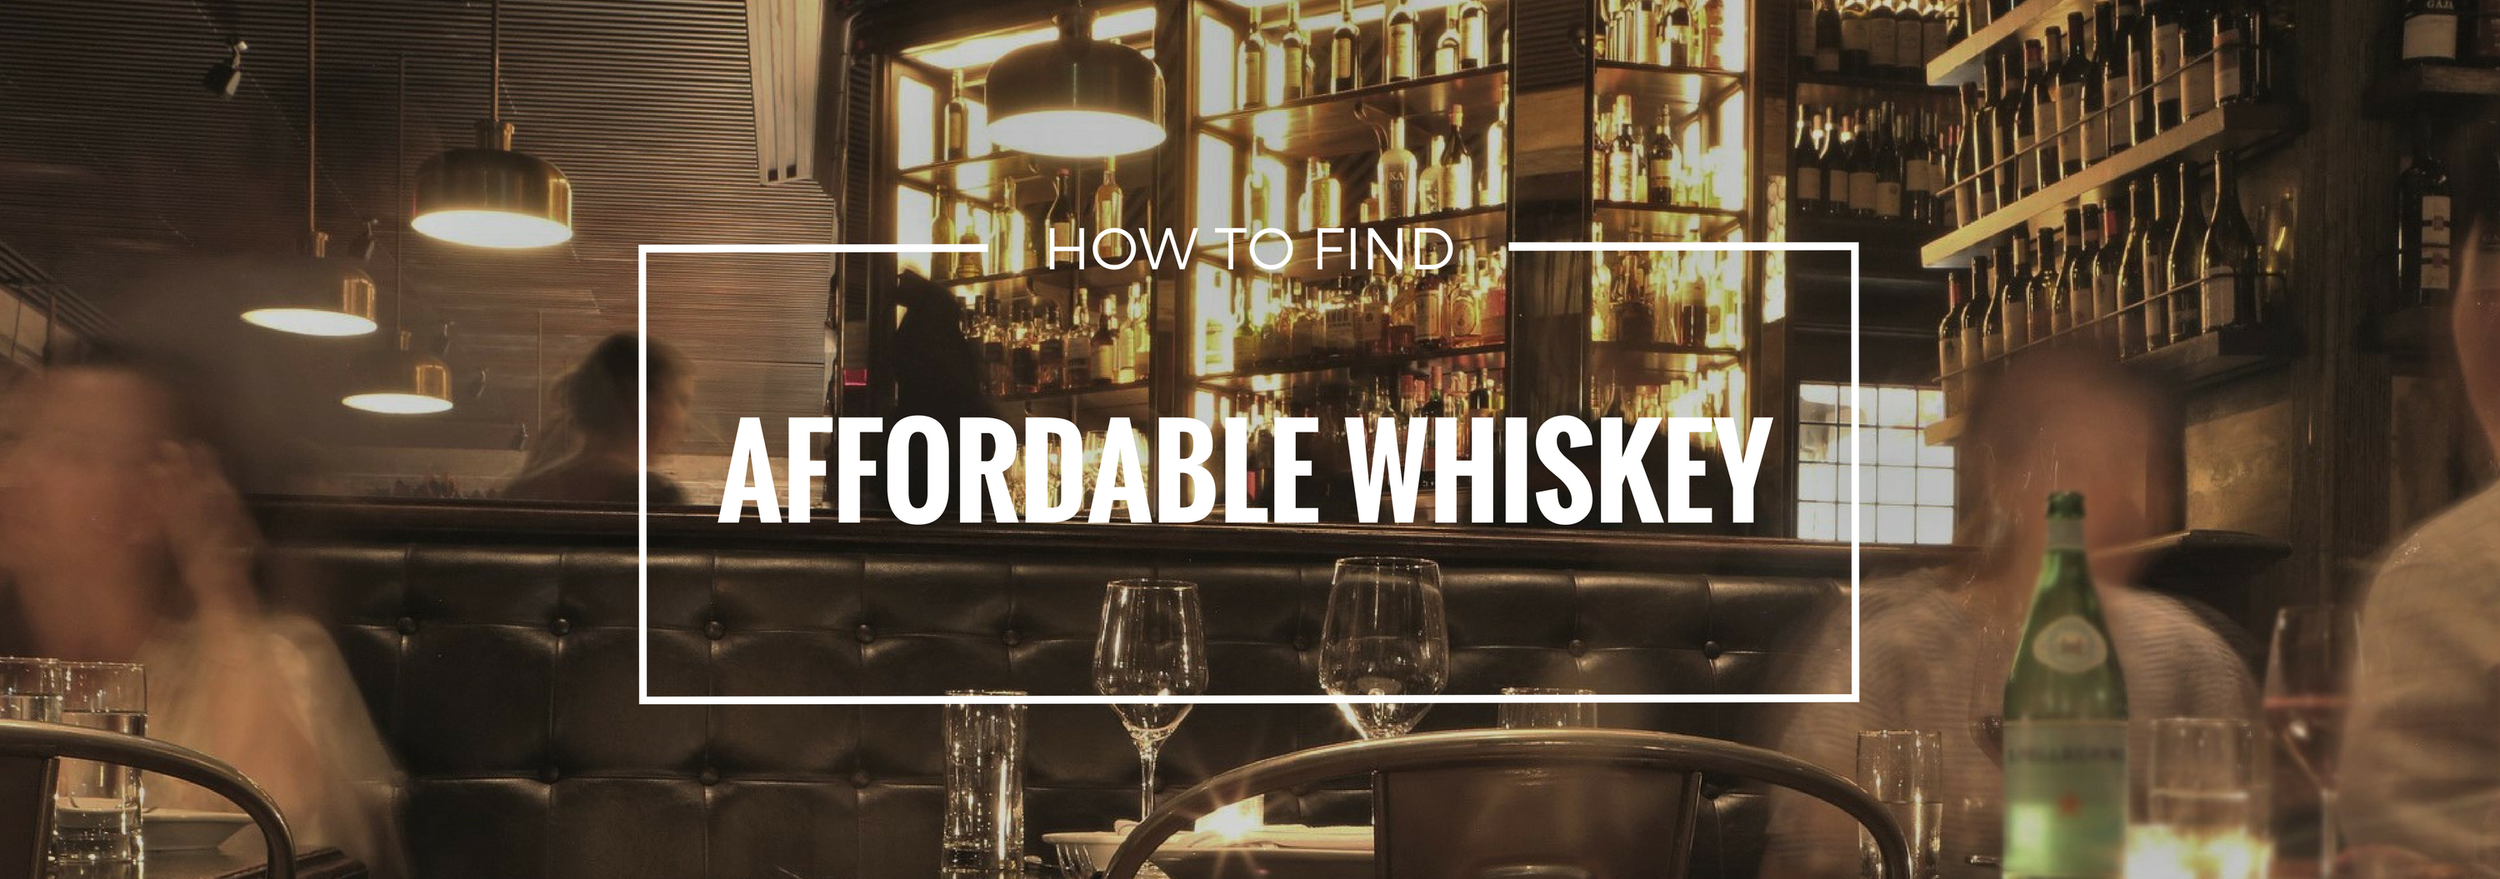 find-affordable-whiskey1.png